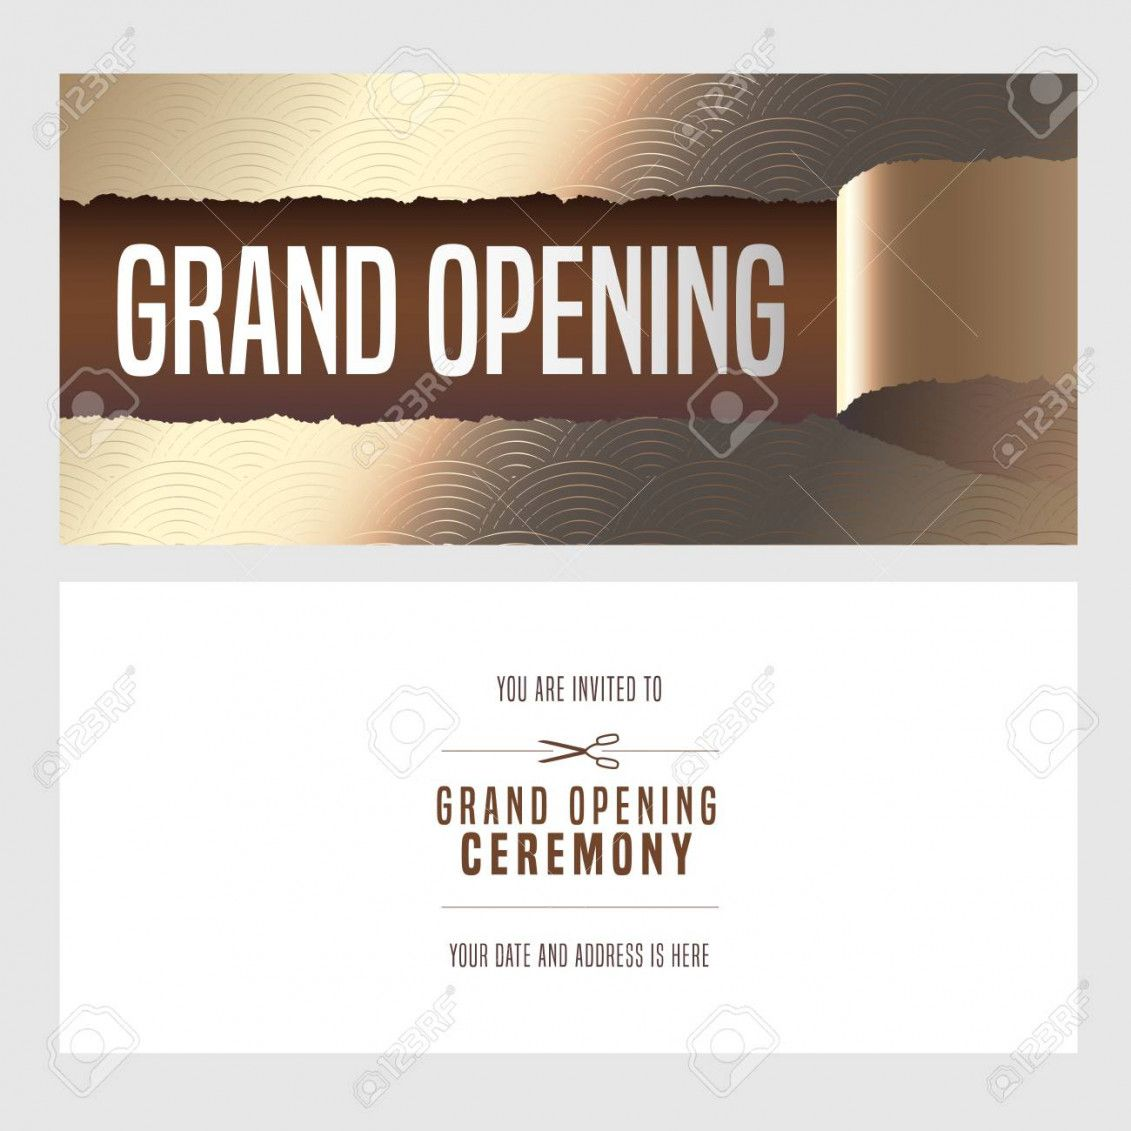 Invitation Template Opening Ceremony Invitation Card Sample Invitations Shop Opening Invitation Card